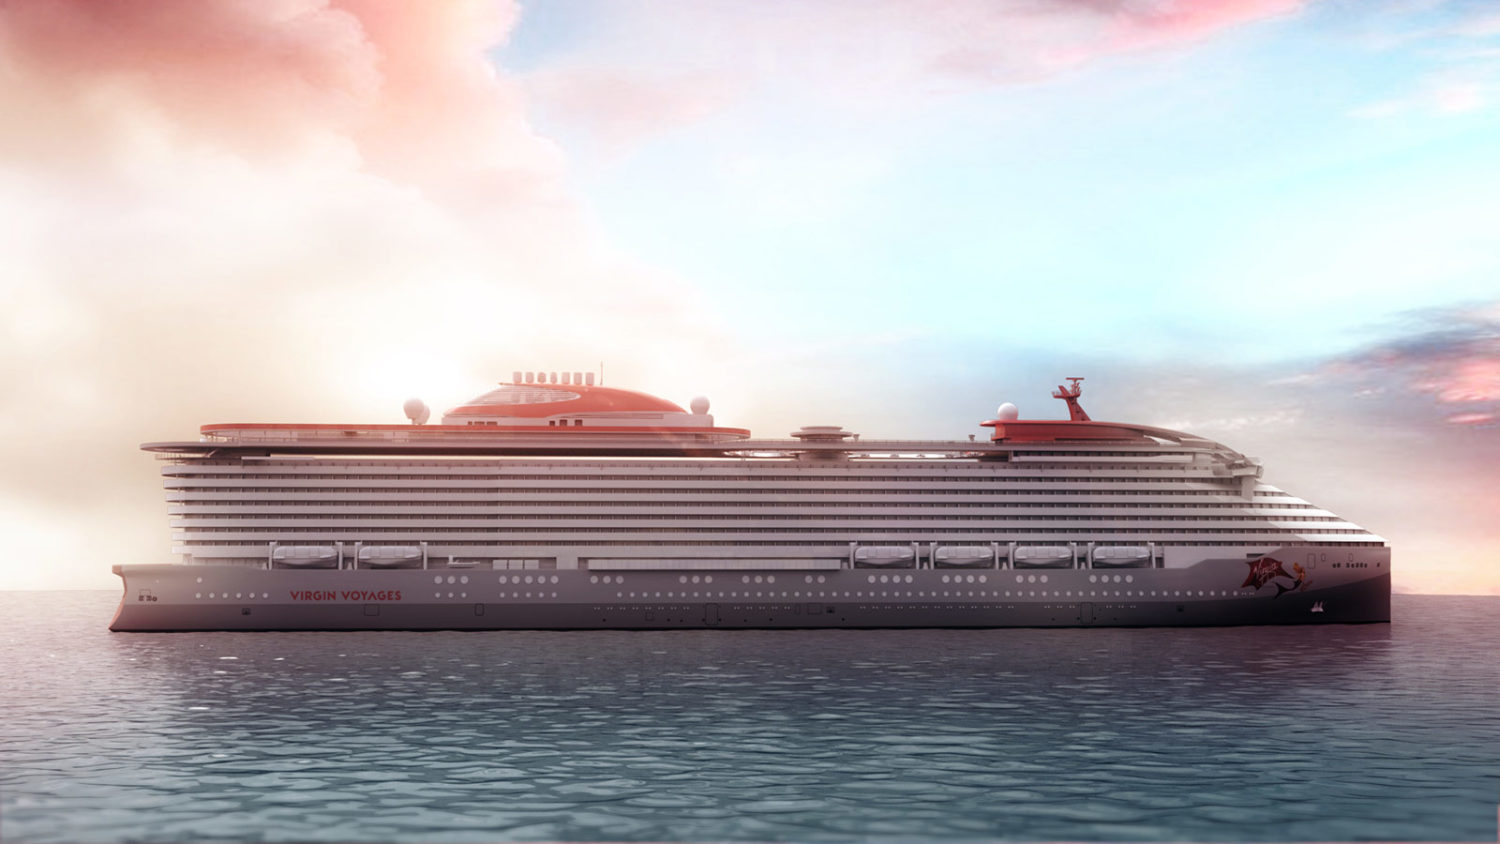 Virgin Voyages Celebrates Dual Milestones on